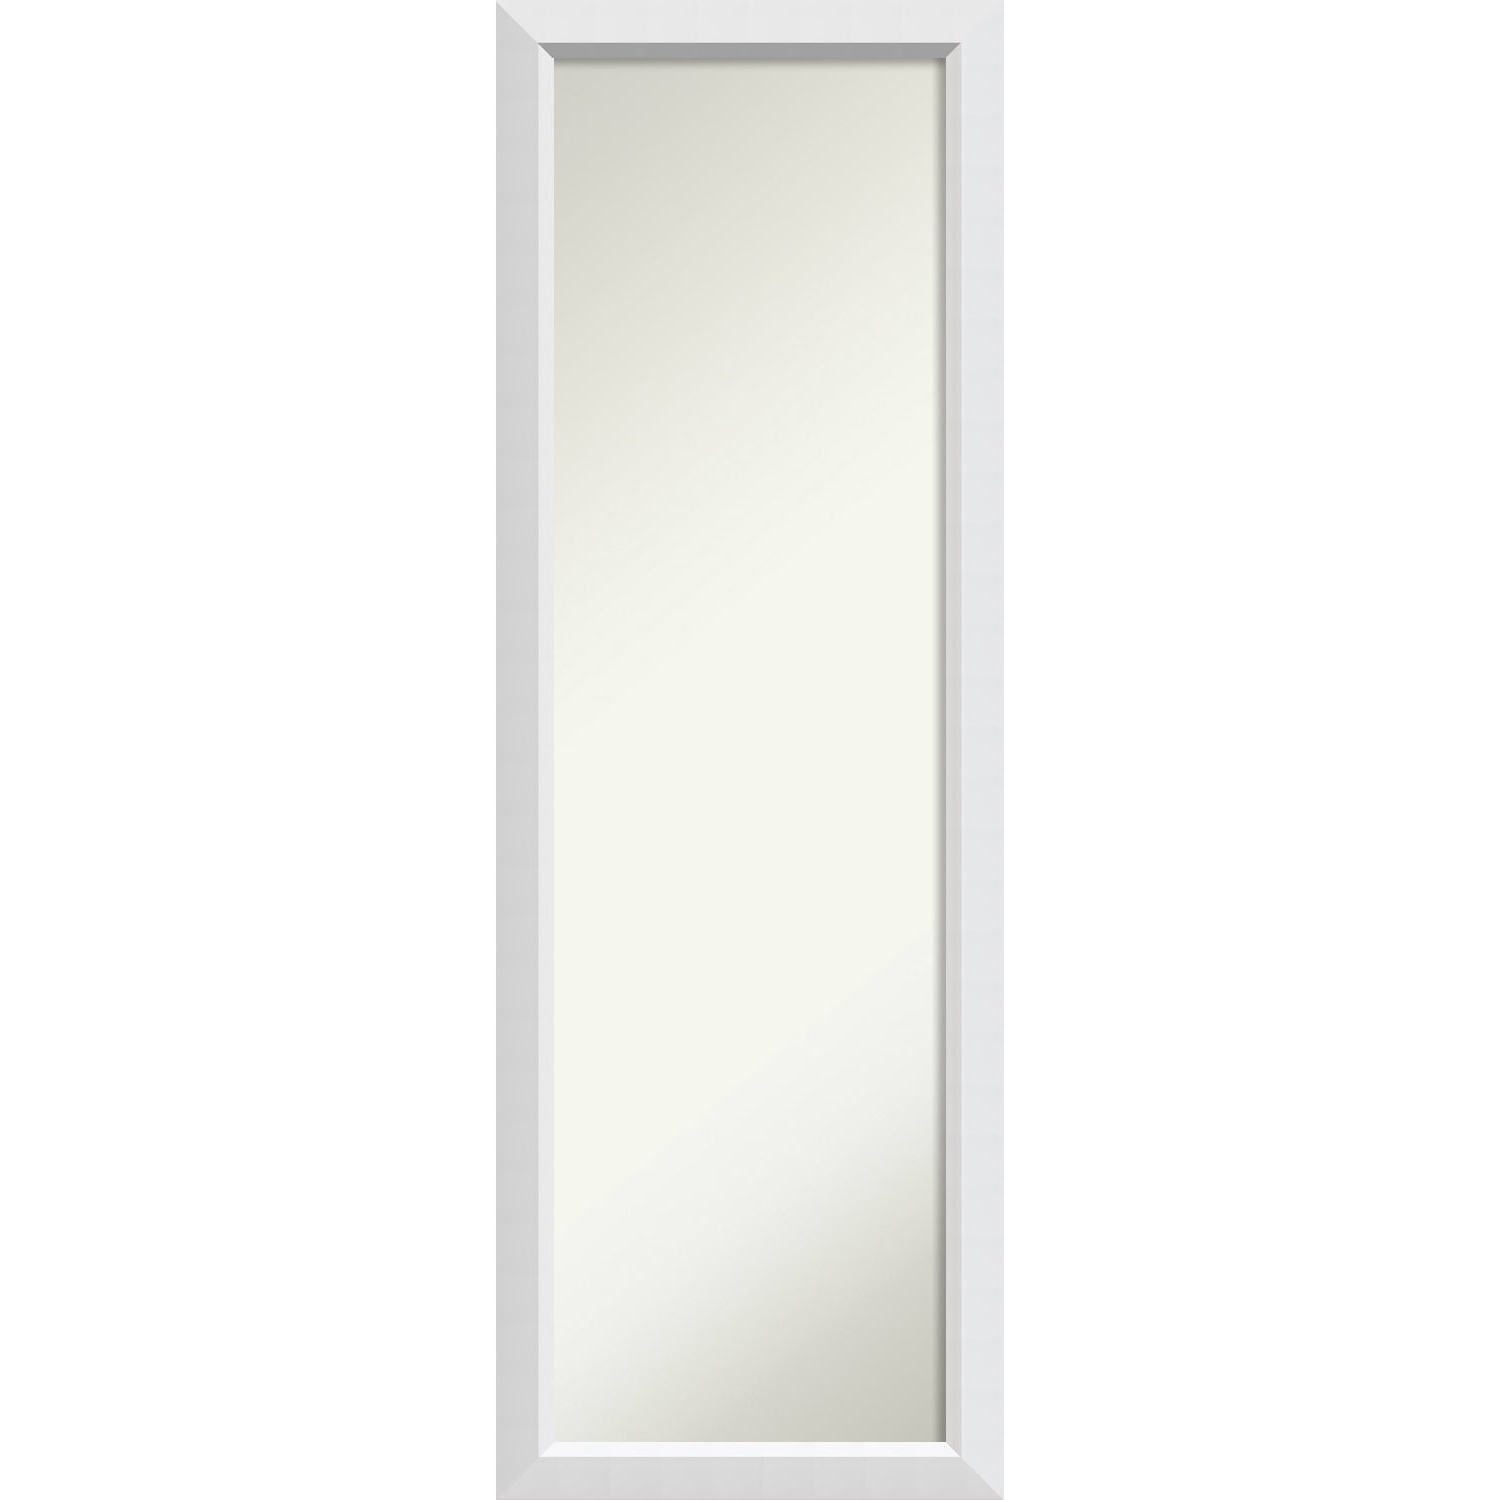 Full Length Wall Mirrors For Latest On The Door Full Length Wall Mirror, Blanco White 18 X 52 Inch – 52 X 18 X   (View 7 of 20)